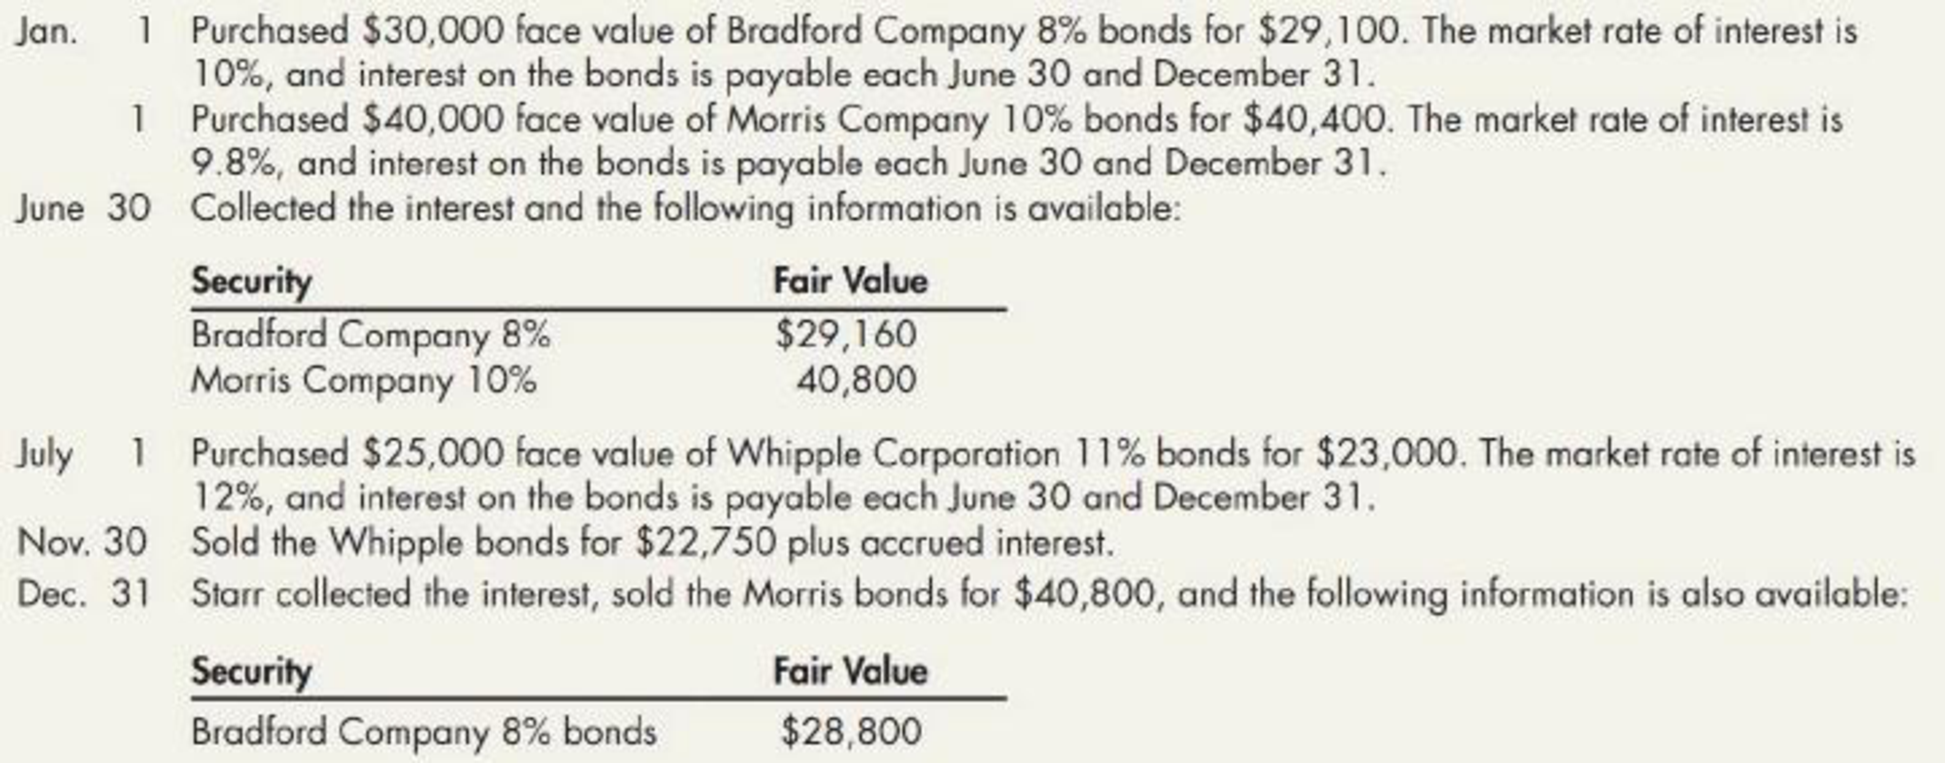 Chapter 13, Problem 10P, Investment in Available-for-Sale Bonds The following information relates to Starr Companys